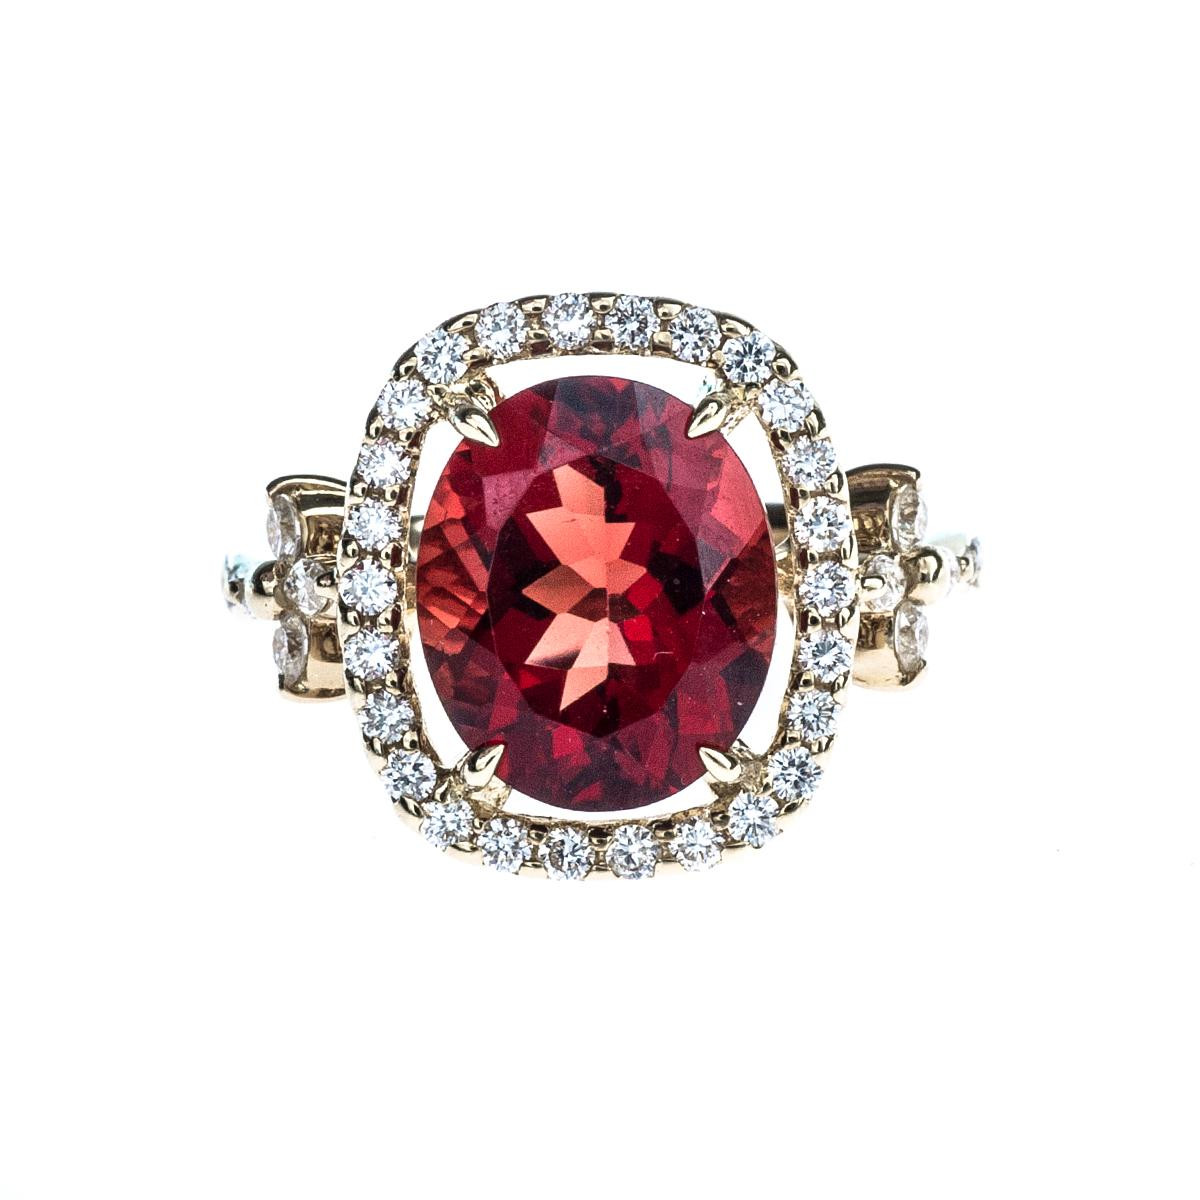 Judy Mayfield 3.46 CT Sunstone Ring